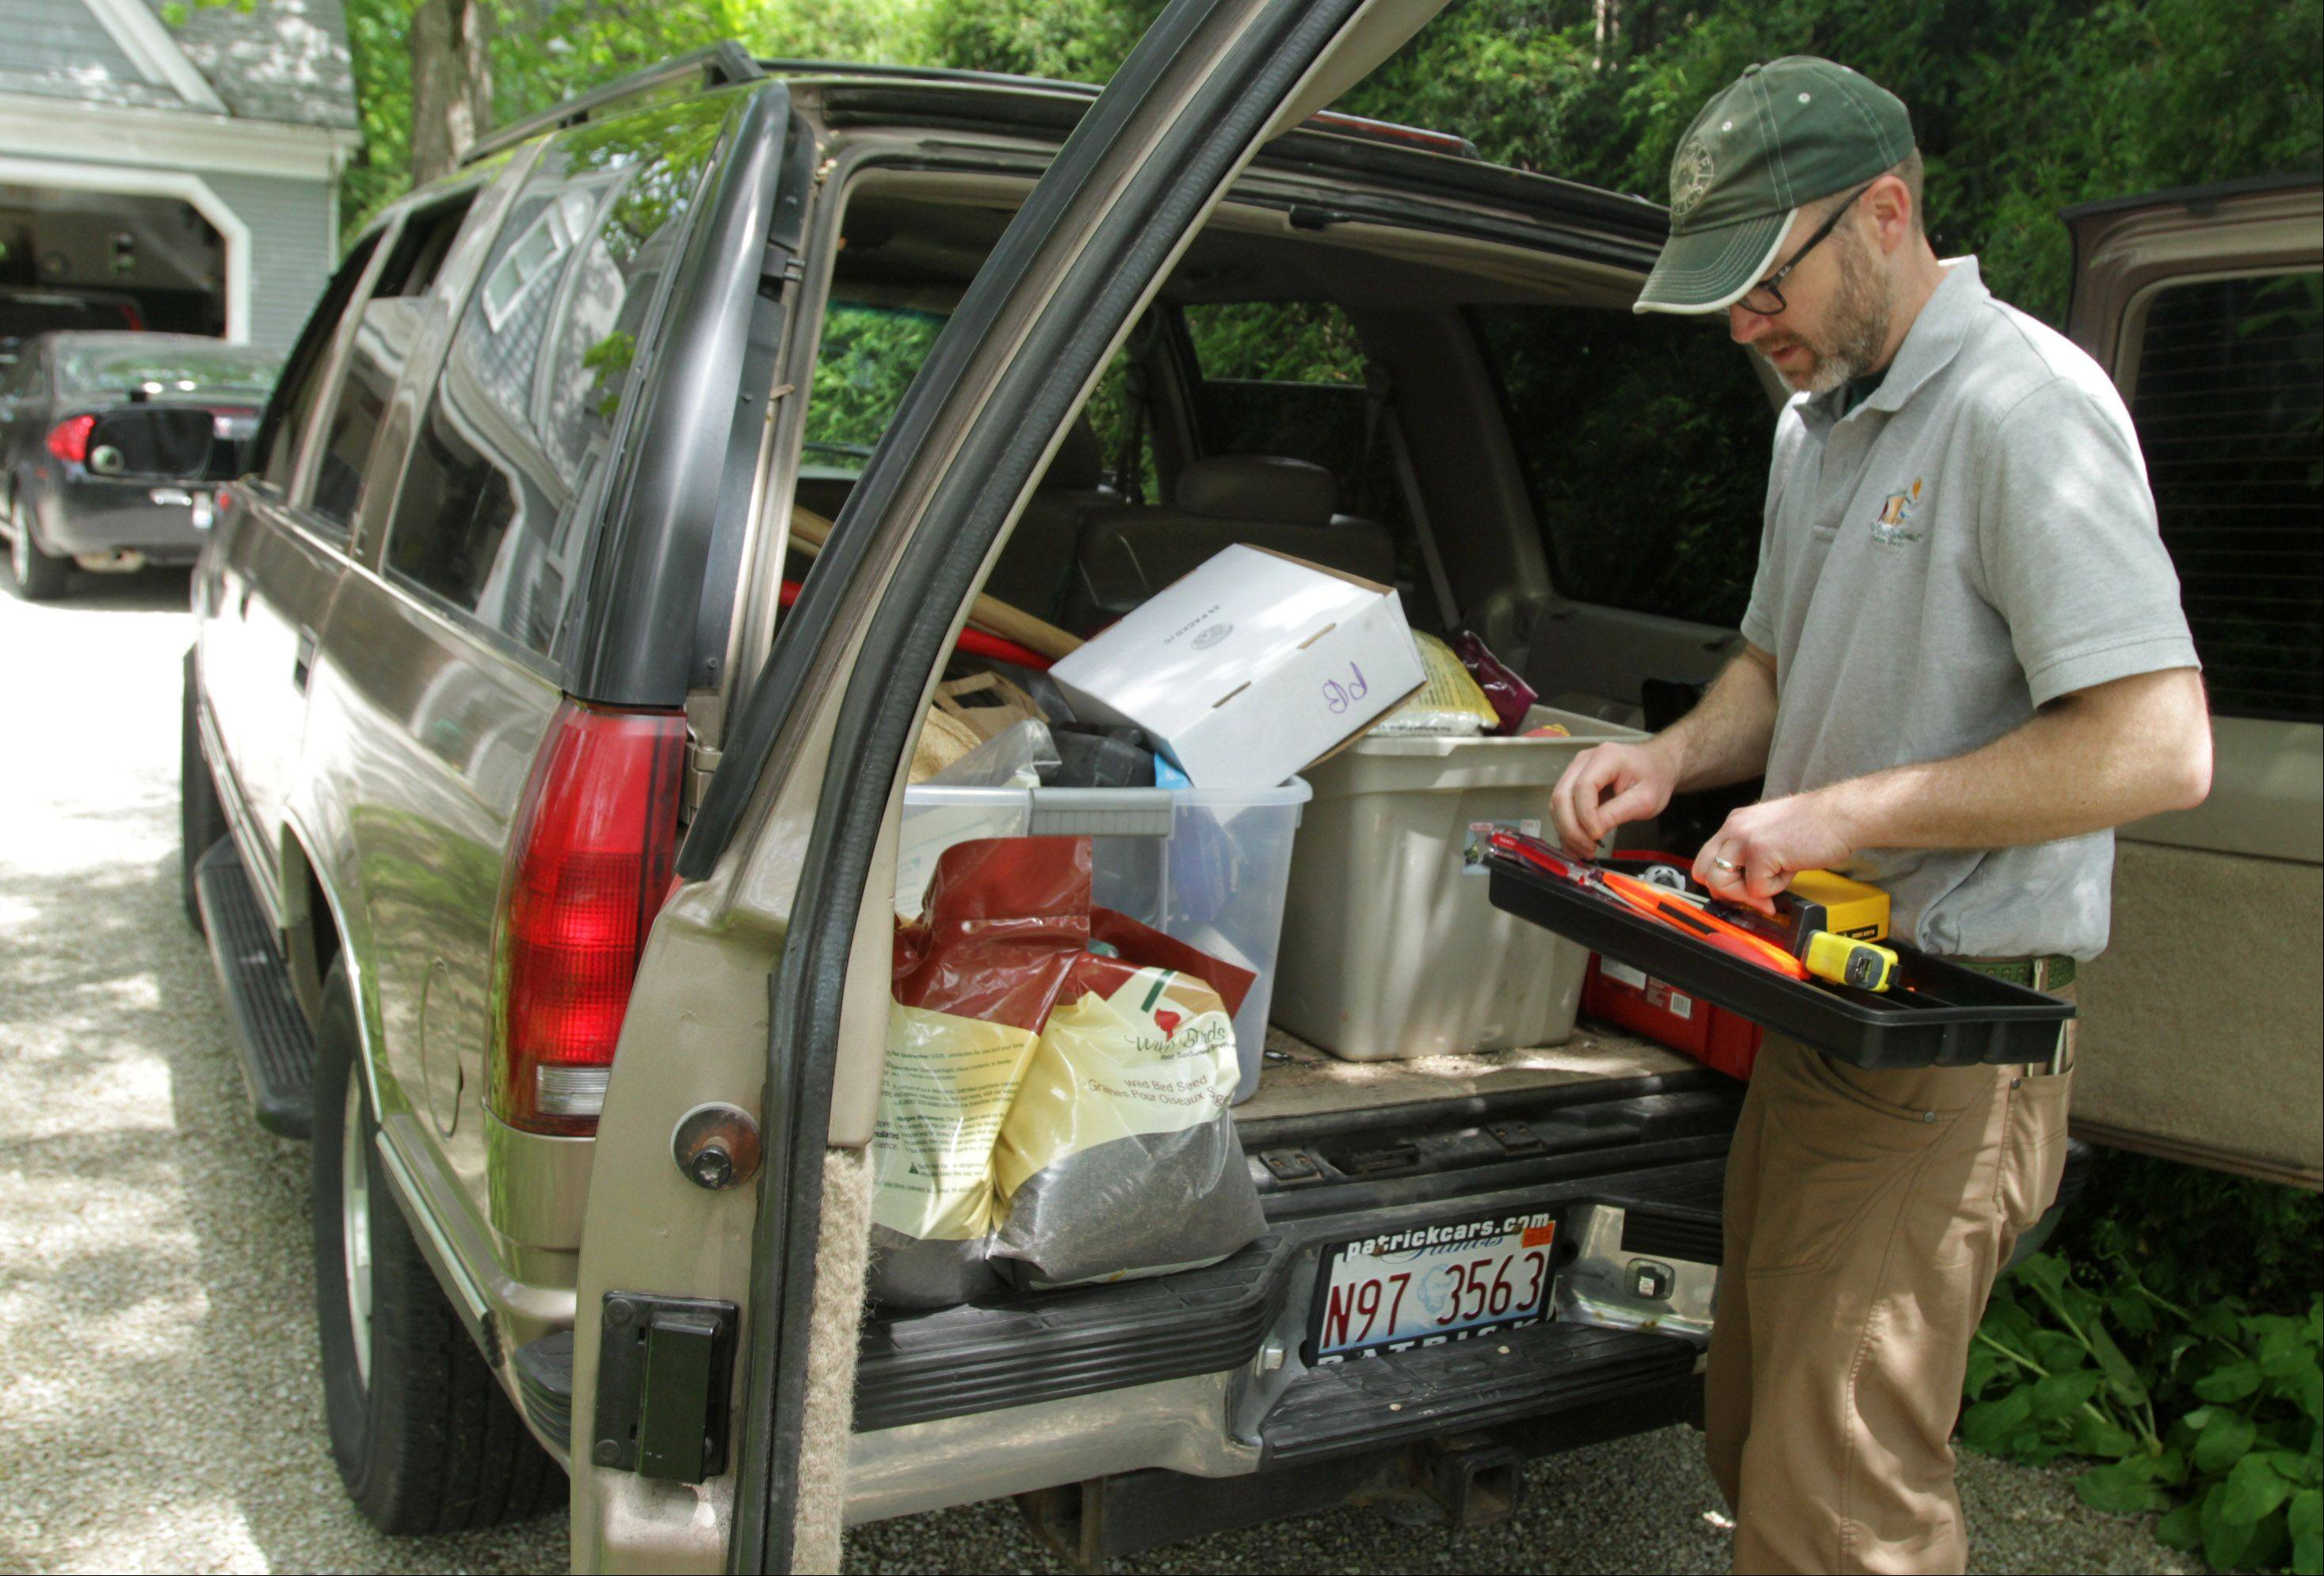 Tim Joyce maintains a variety of bird seed, suet and nuts to fill feeders, along with a toolbox for repairing and installing bird houses, feeders and poles as he travels throughout Cook and Lake counties visiting customers.